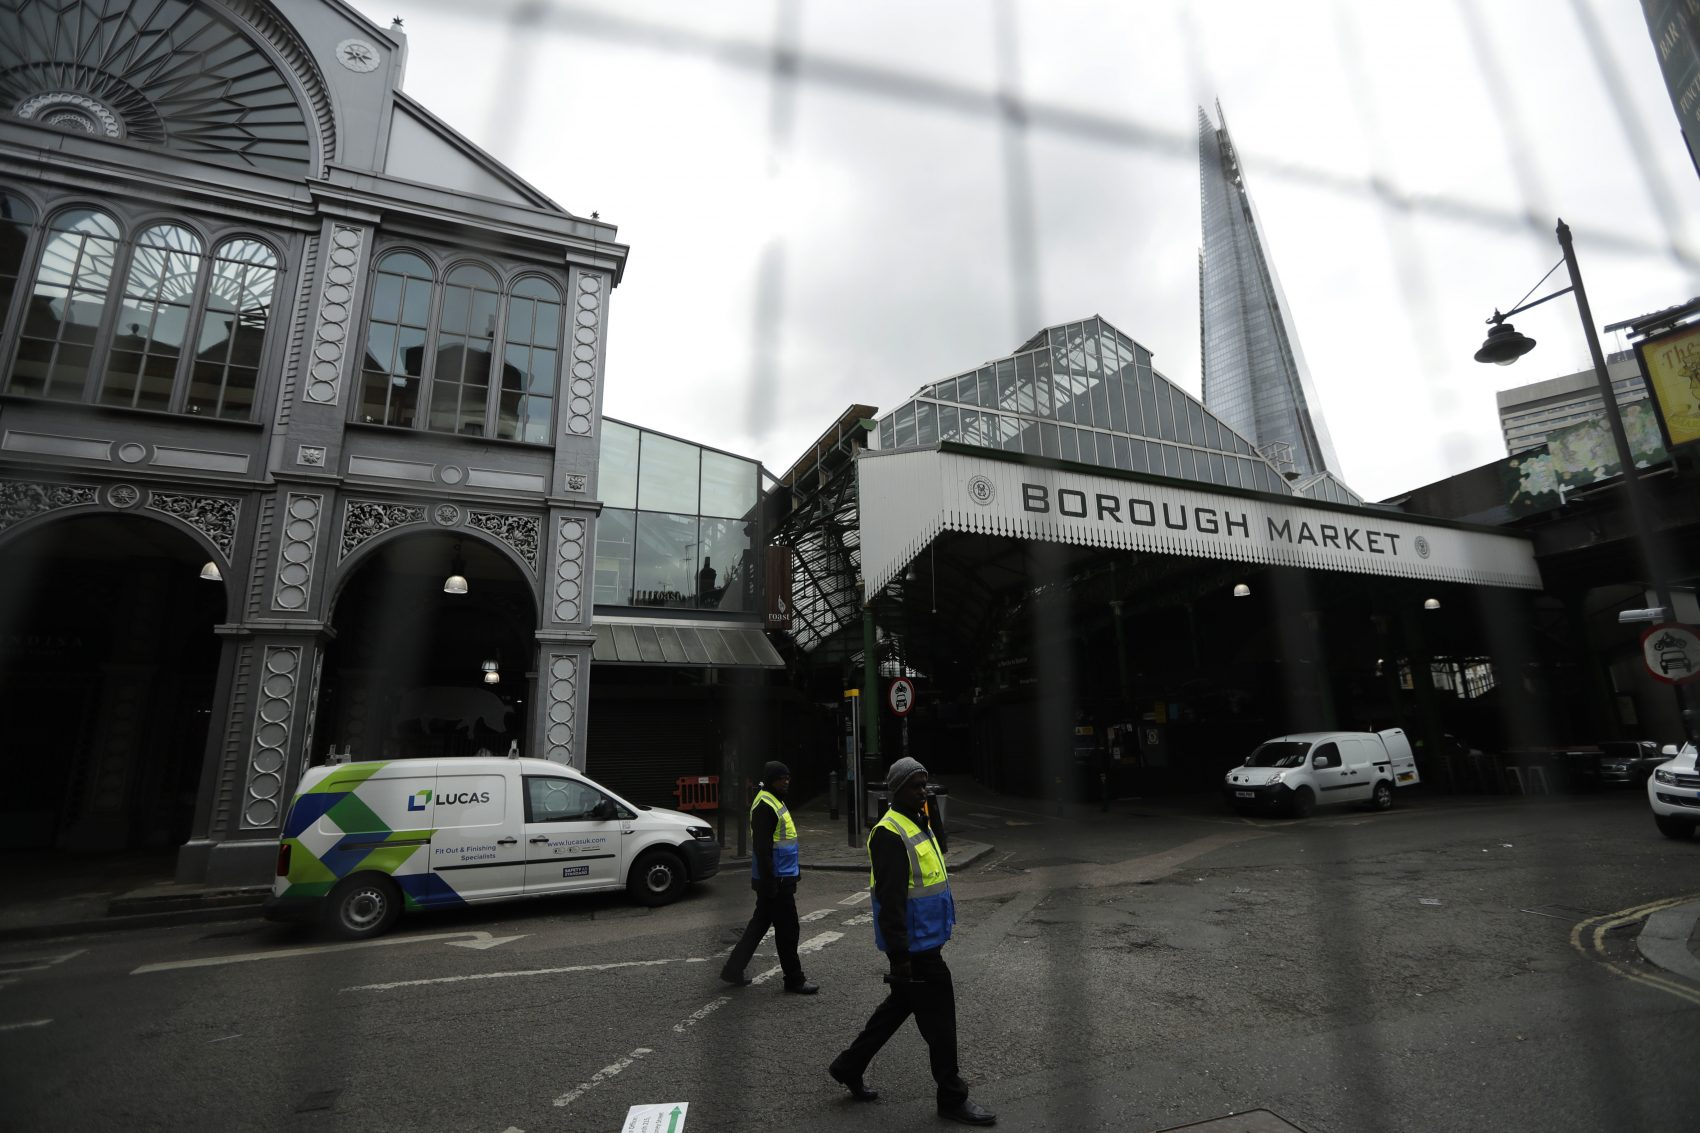 Security marshals are seen through a fence walking beside Borough market, in London, which remains closed to the public after the attack that took place there, Monday, June 12, 2017. (Matt Dunham/AP)